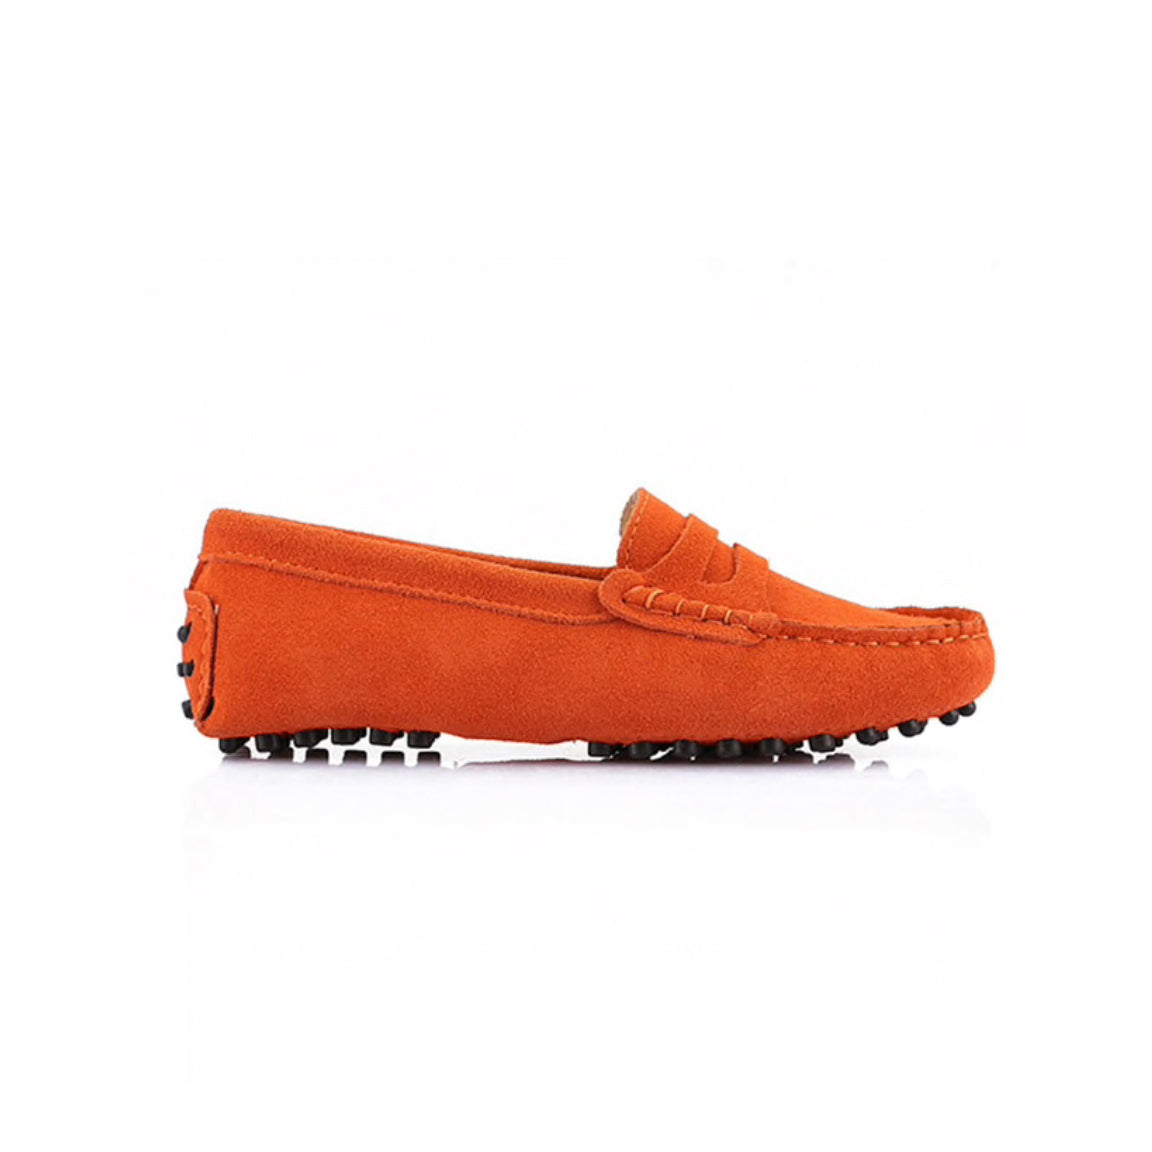 IVY YACHT Loafers TANGERINE